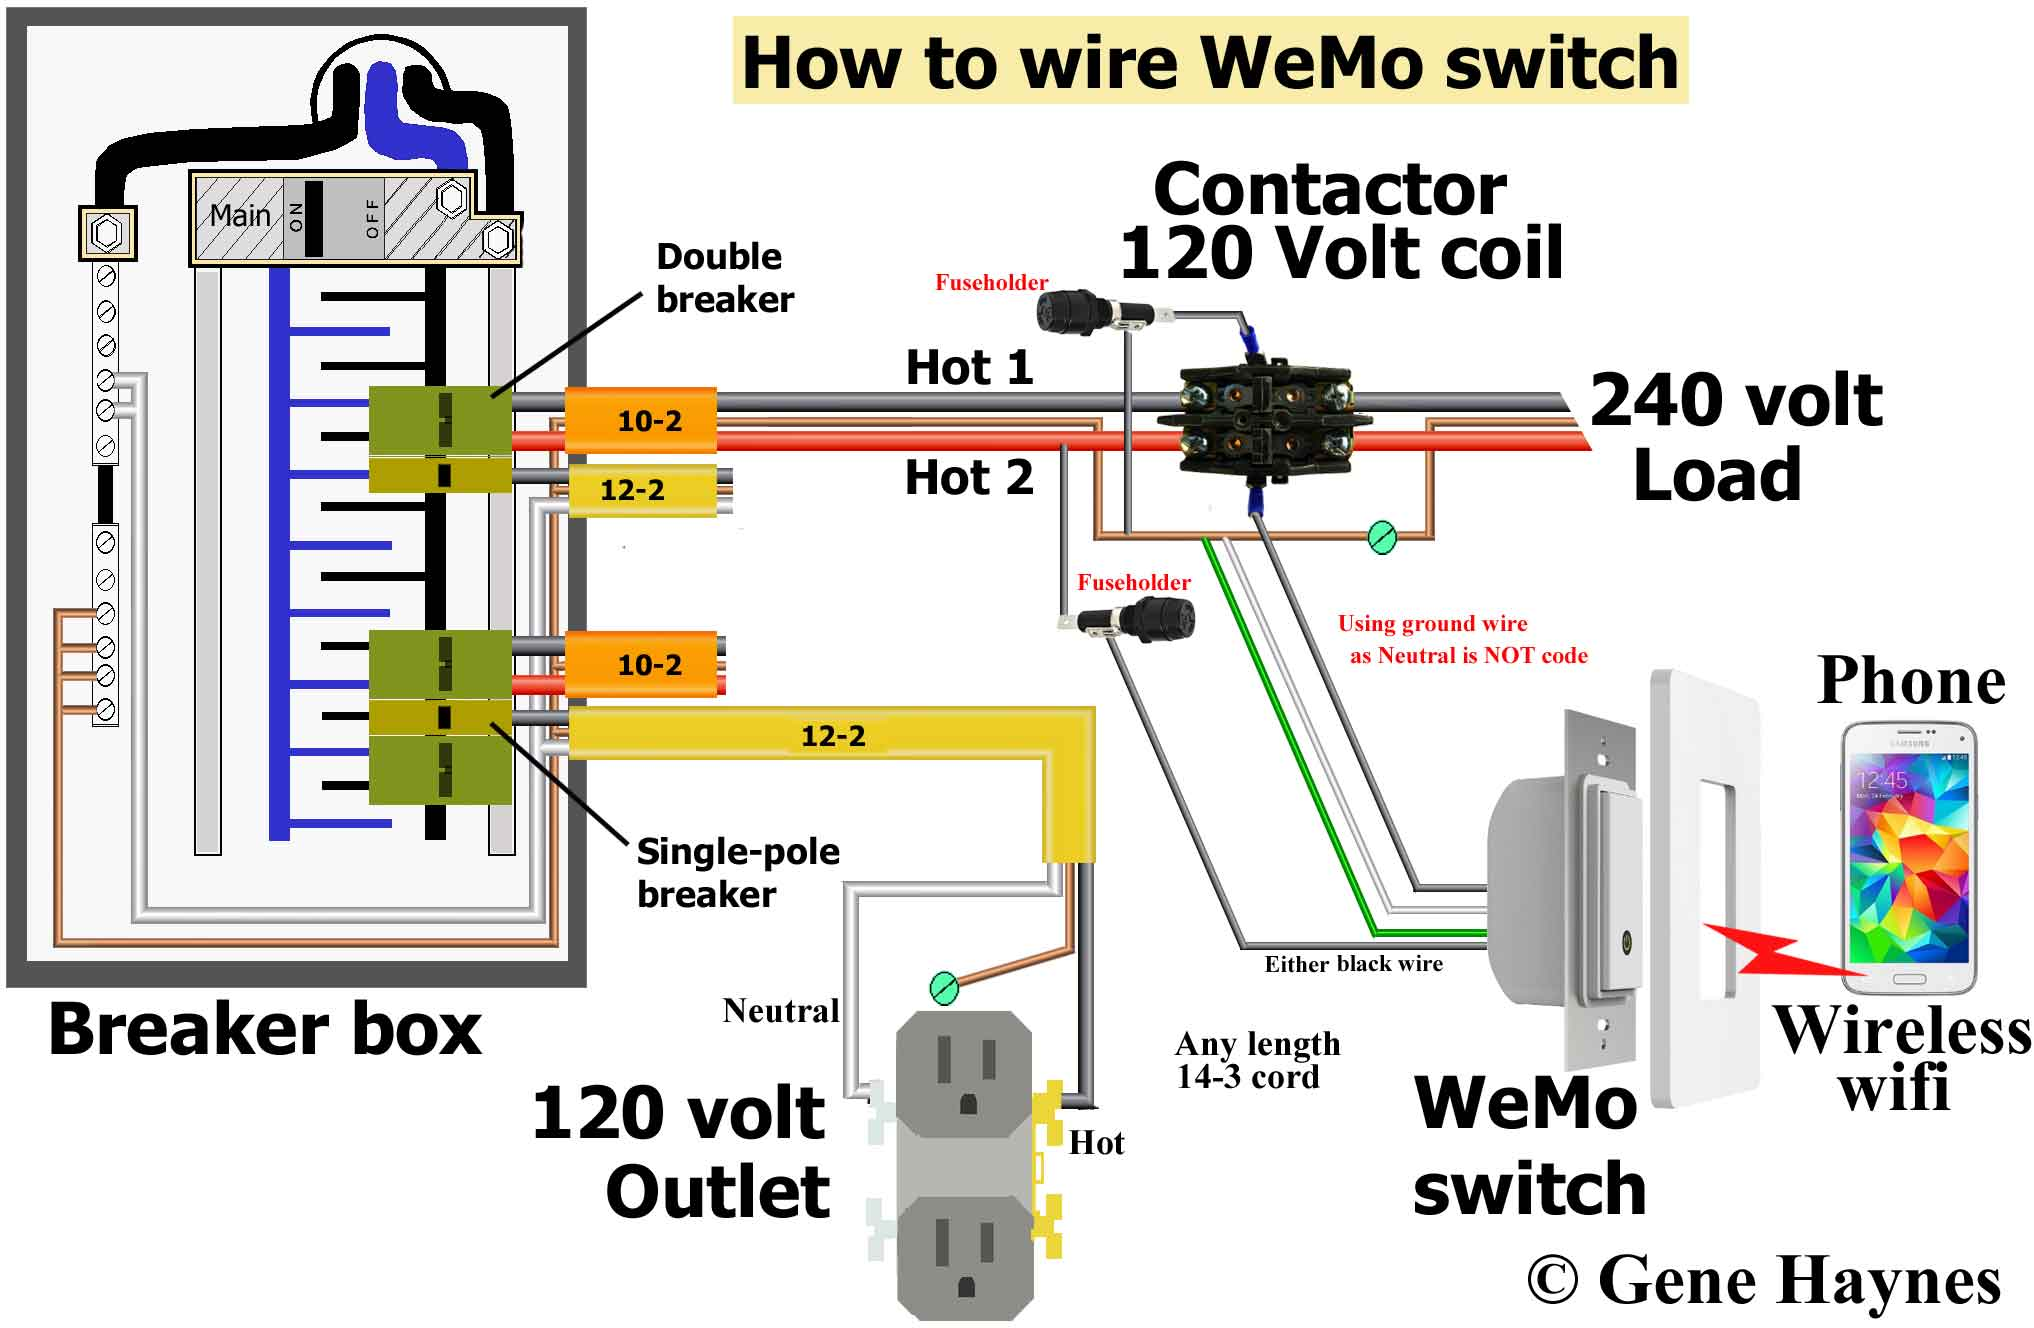 WeMo switch wiring illustration 33 not code control 240 volt with wemo 220v light switch wiring diagram at gsmx.co